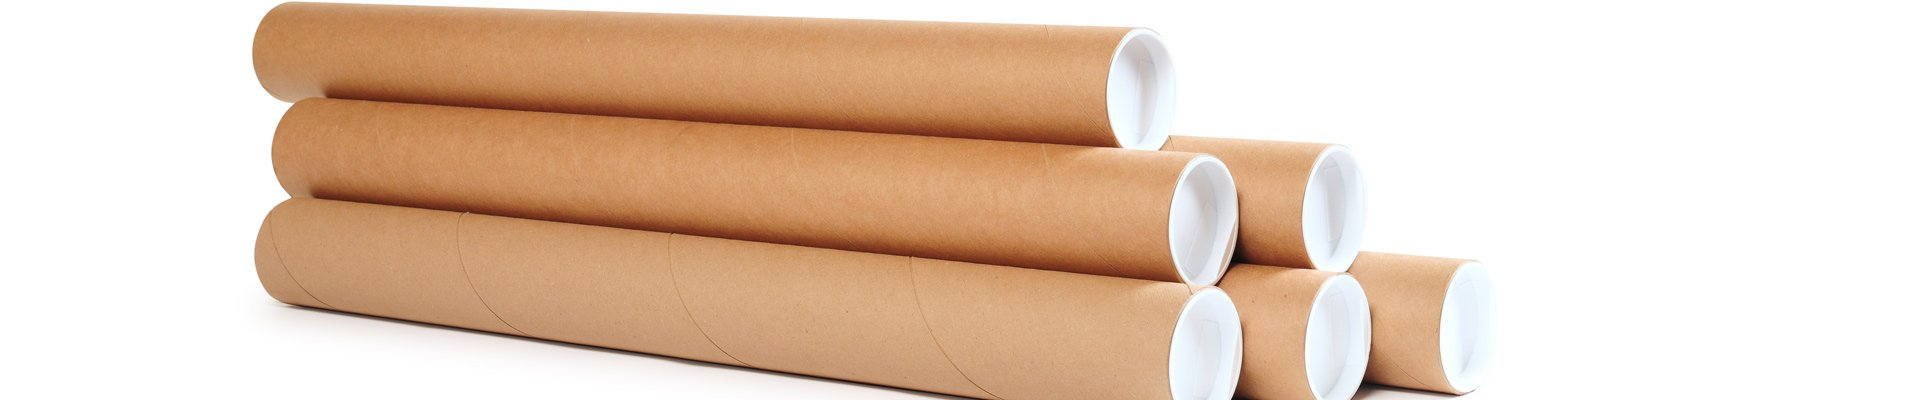 the tubeworks cardboard tubes with white lids